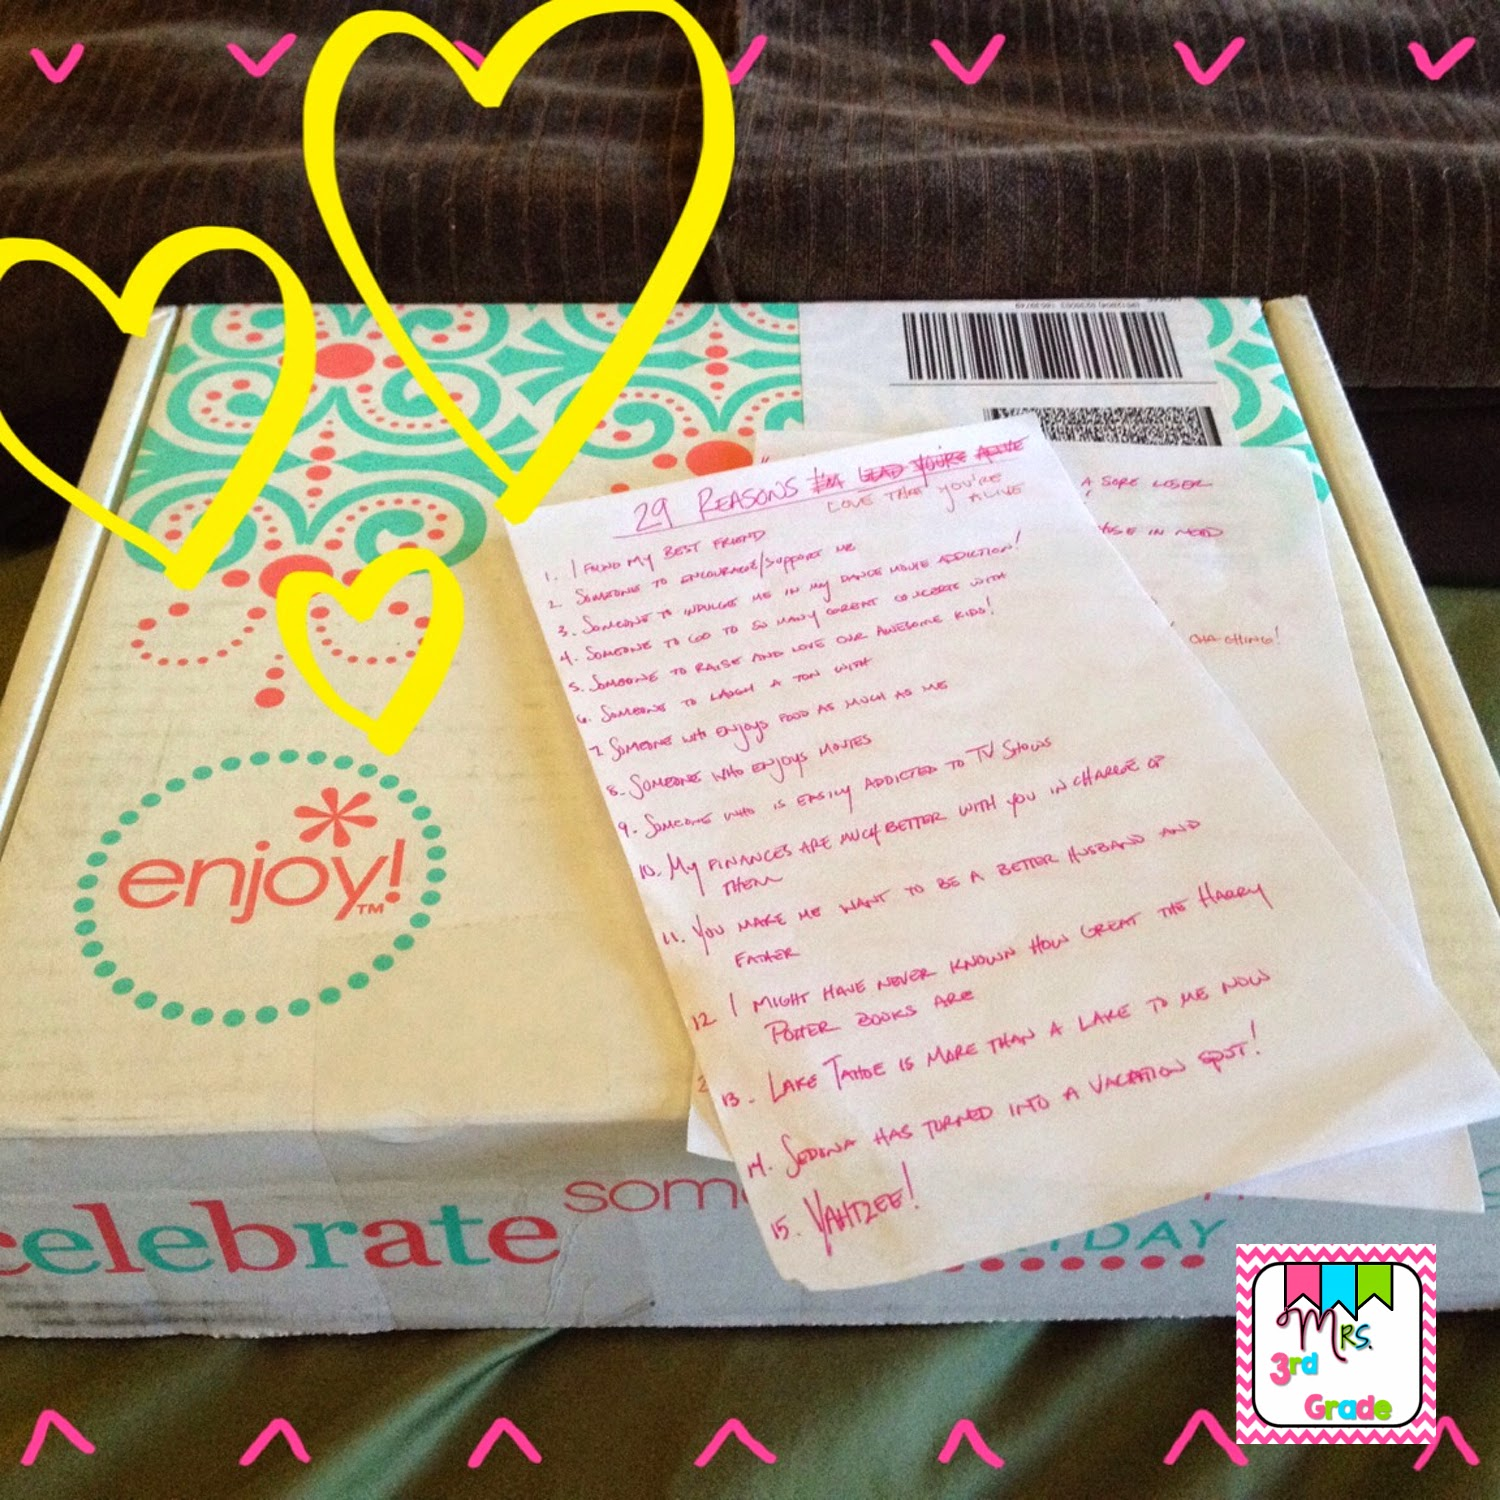 Mrs 3rd Grade's new life planner and sweet note from her hubby!